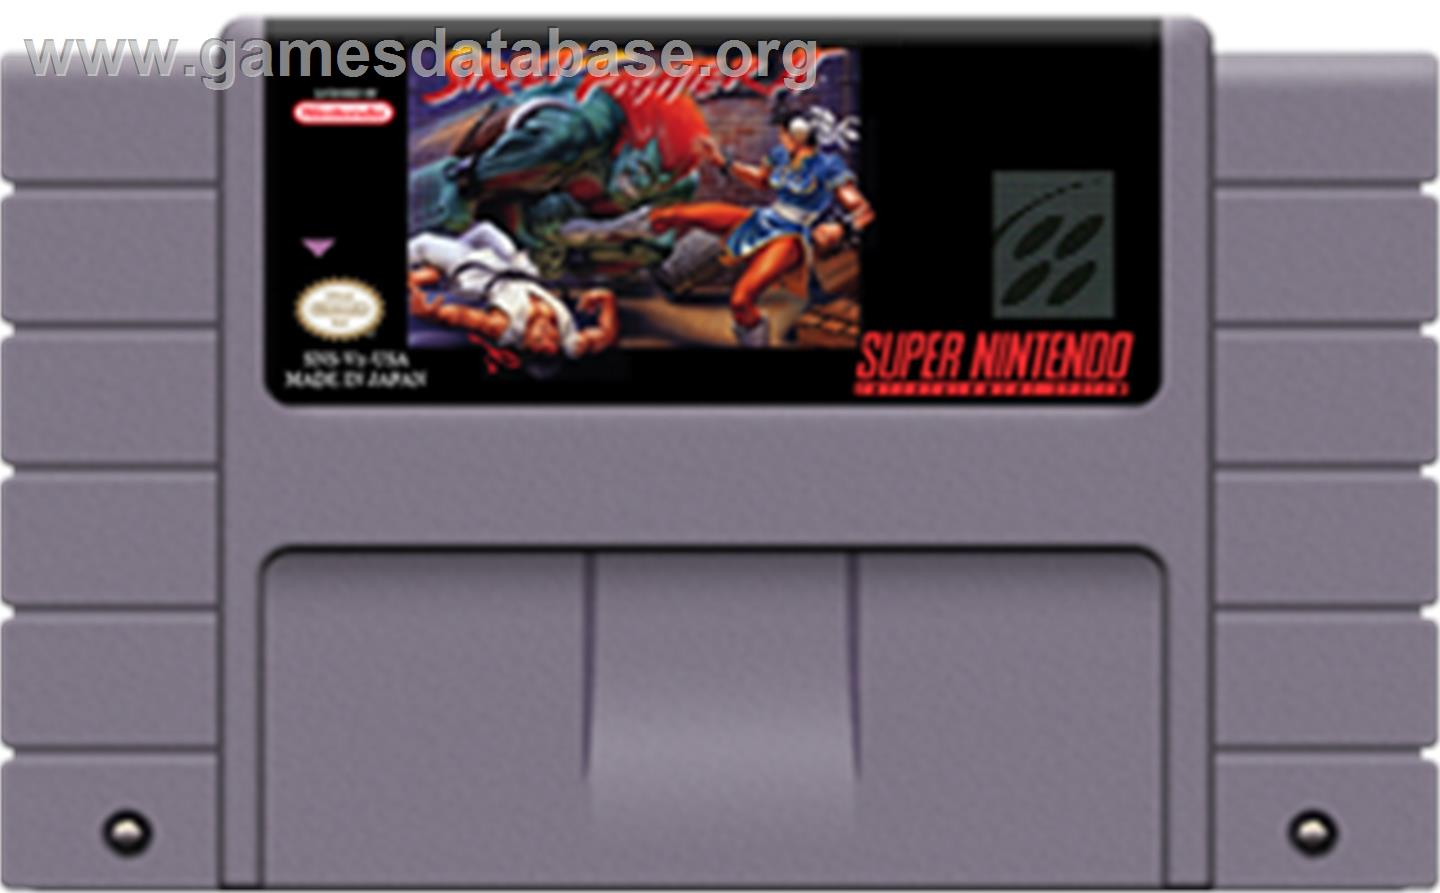 Street Fighter II: The World Warrior - Nintendo SNES - Artwork - Cartridge